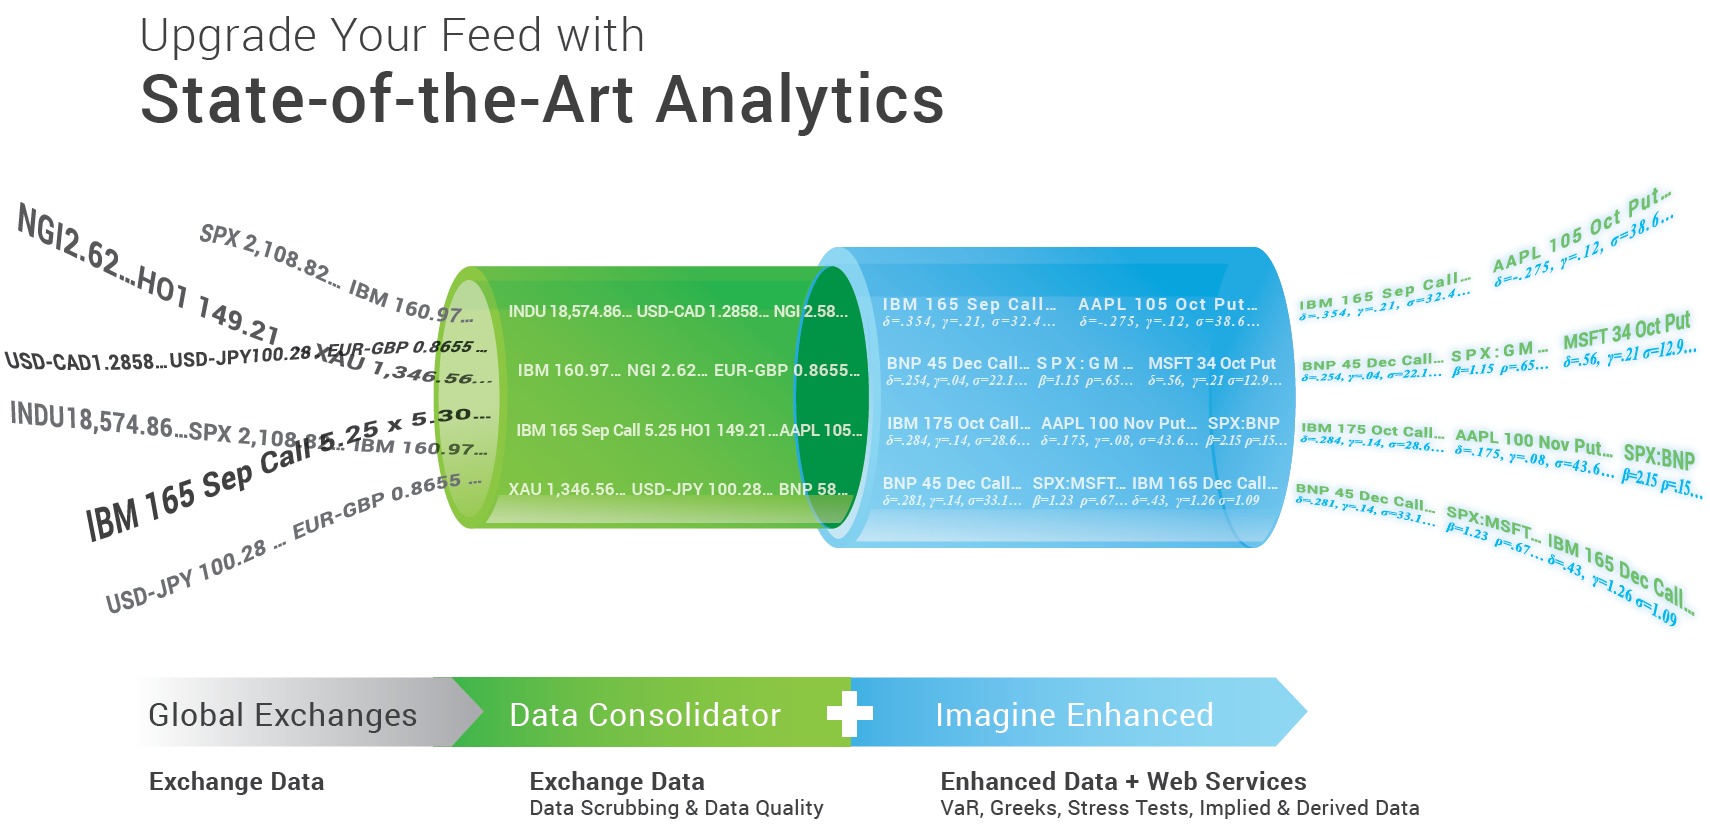 Upgrade your feed with state of the art analytics